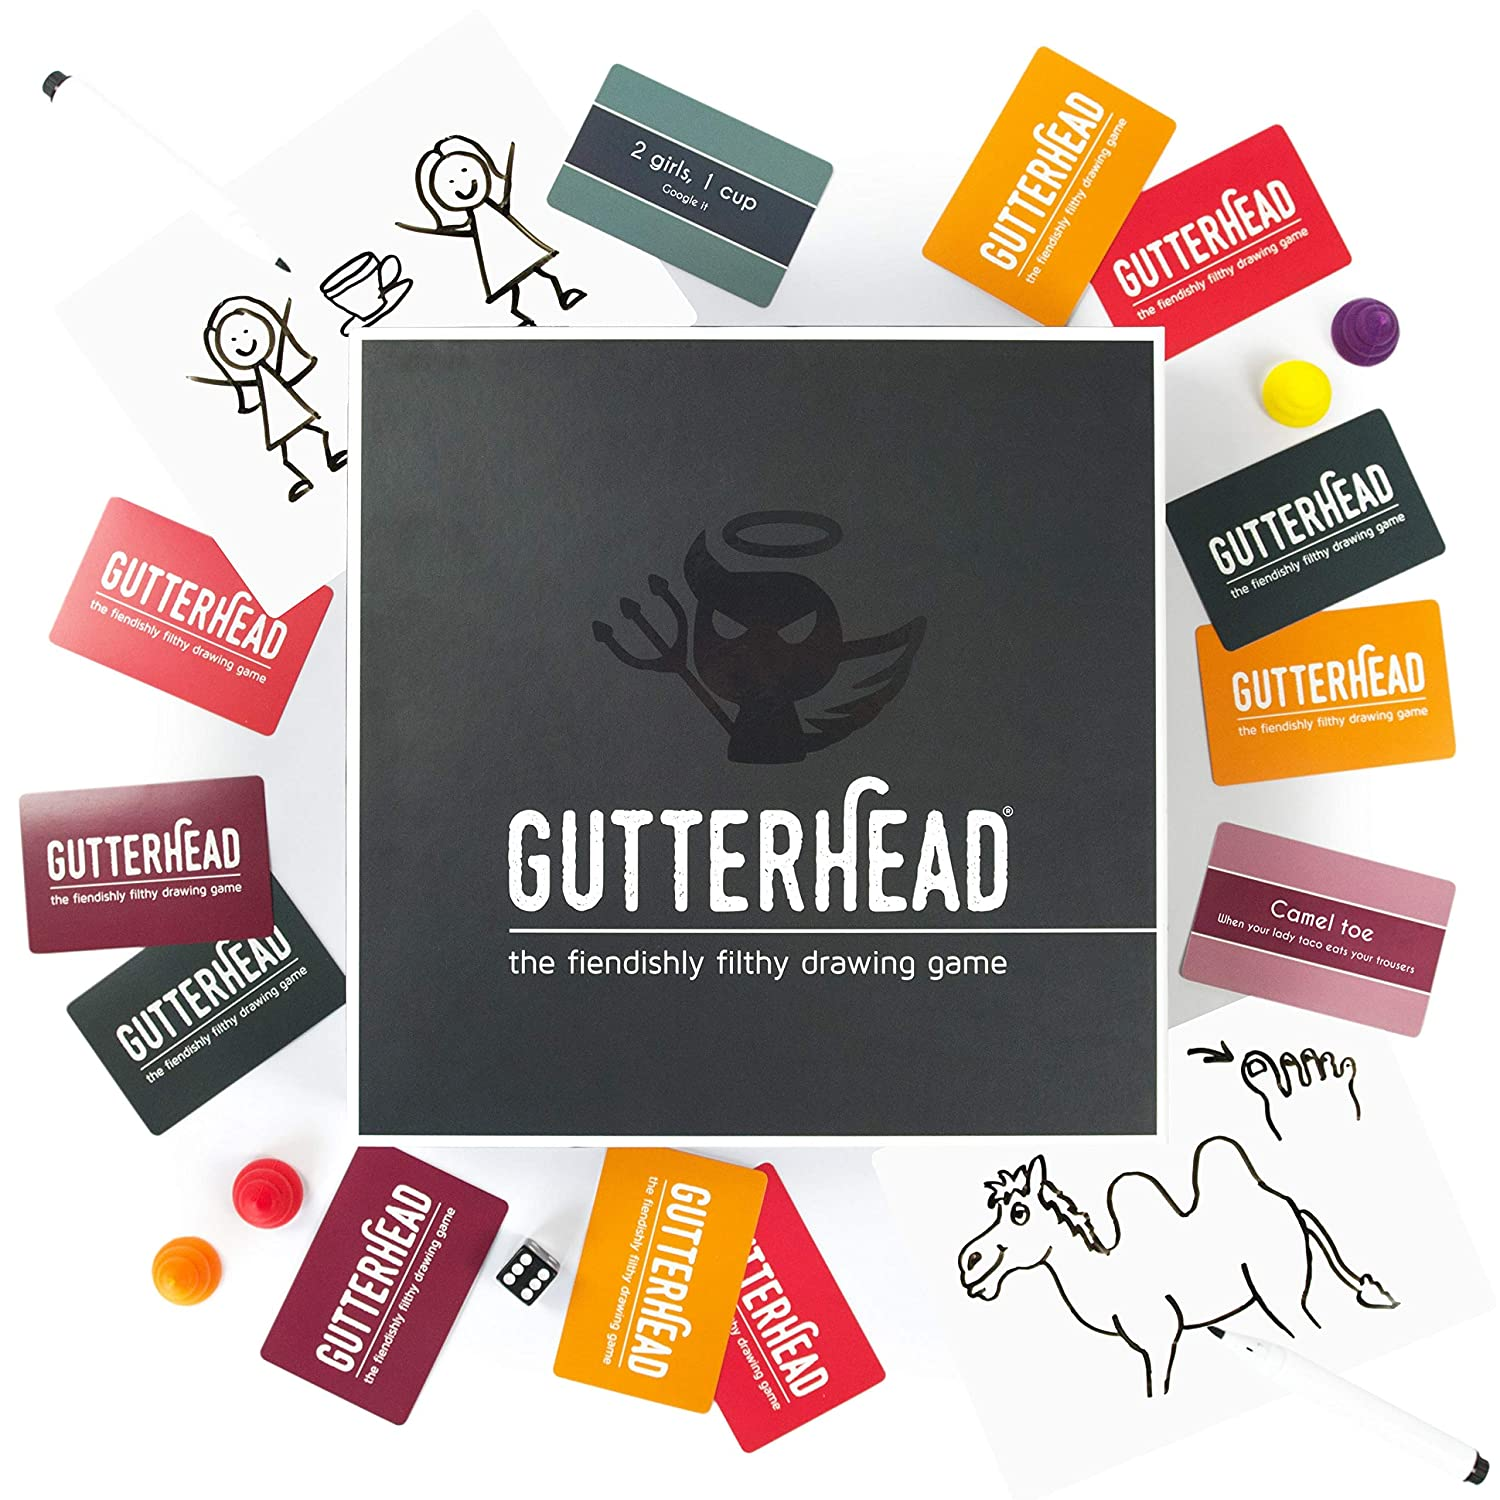 Gutterhead - The Fiendishly Filthy Drawing Game [Drinking & Party Game for Adults] Gutter Games 48447